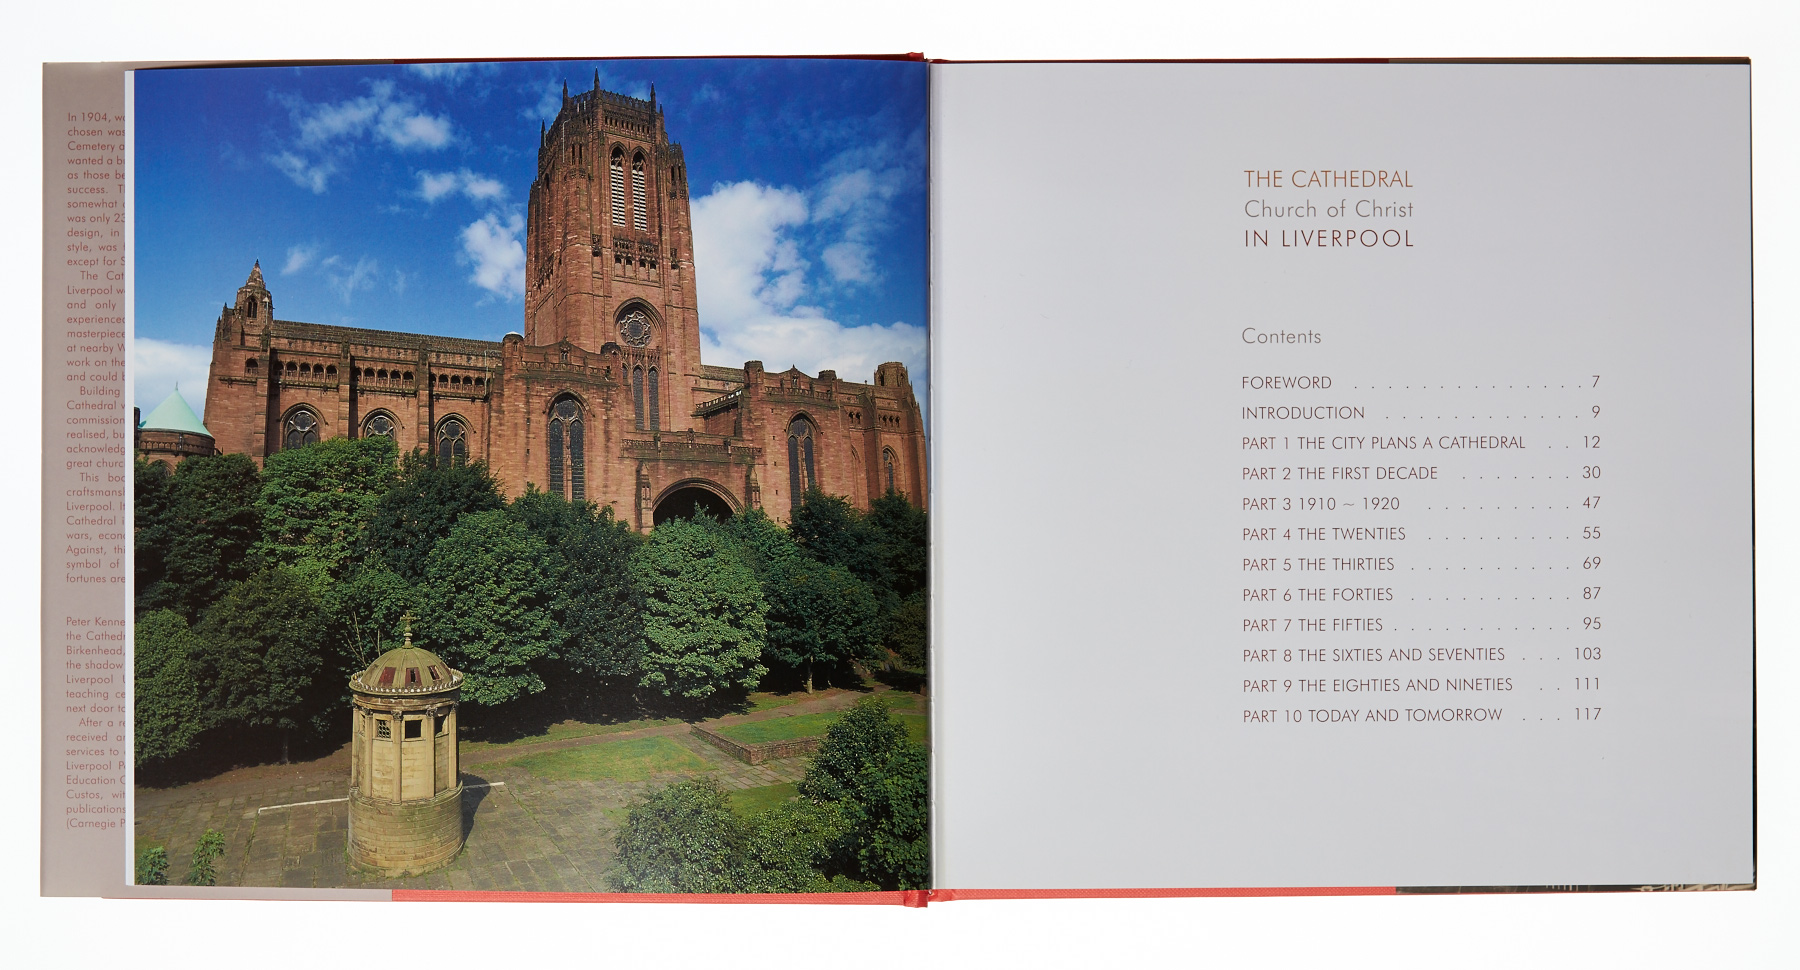 liverpool-cathedral-book-page-03.jpg